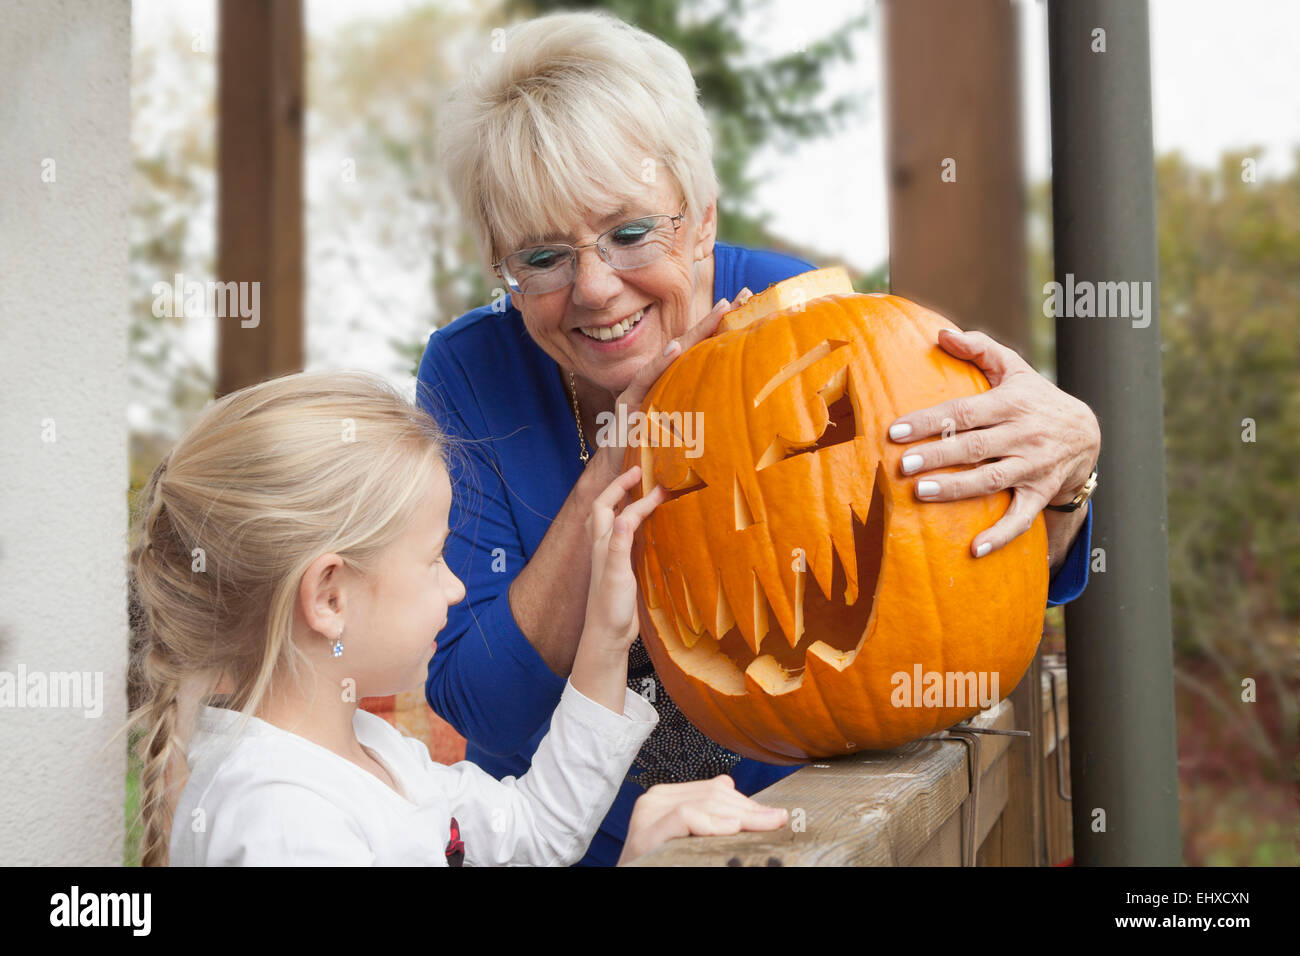 Senior woman showing Halloween pumpkin to her granddaughter, Bavaria, Germany - Stock Image